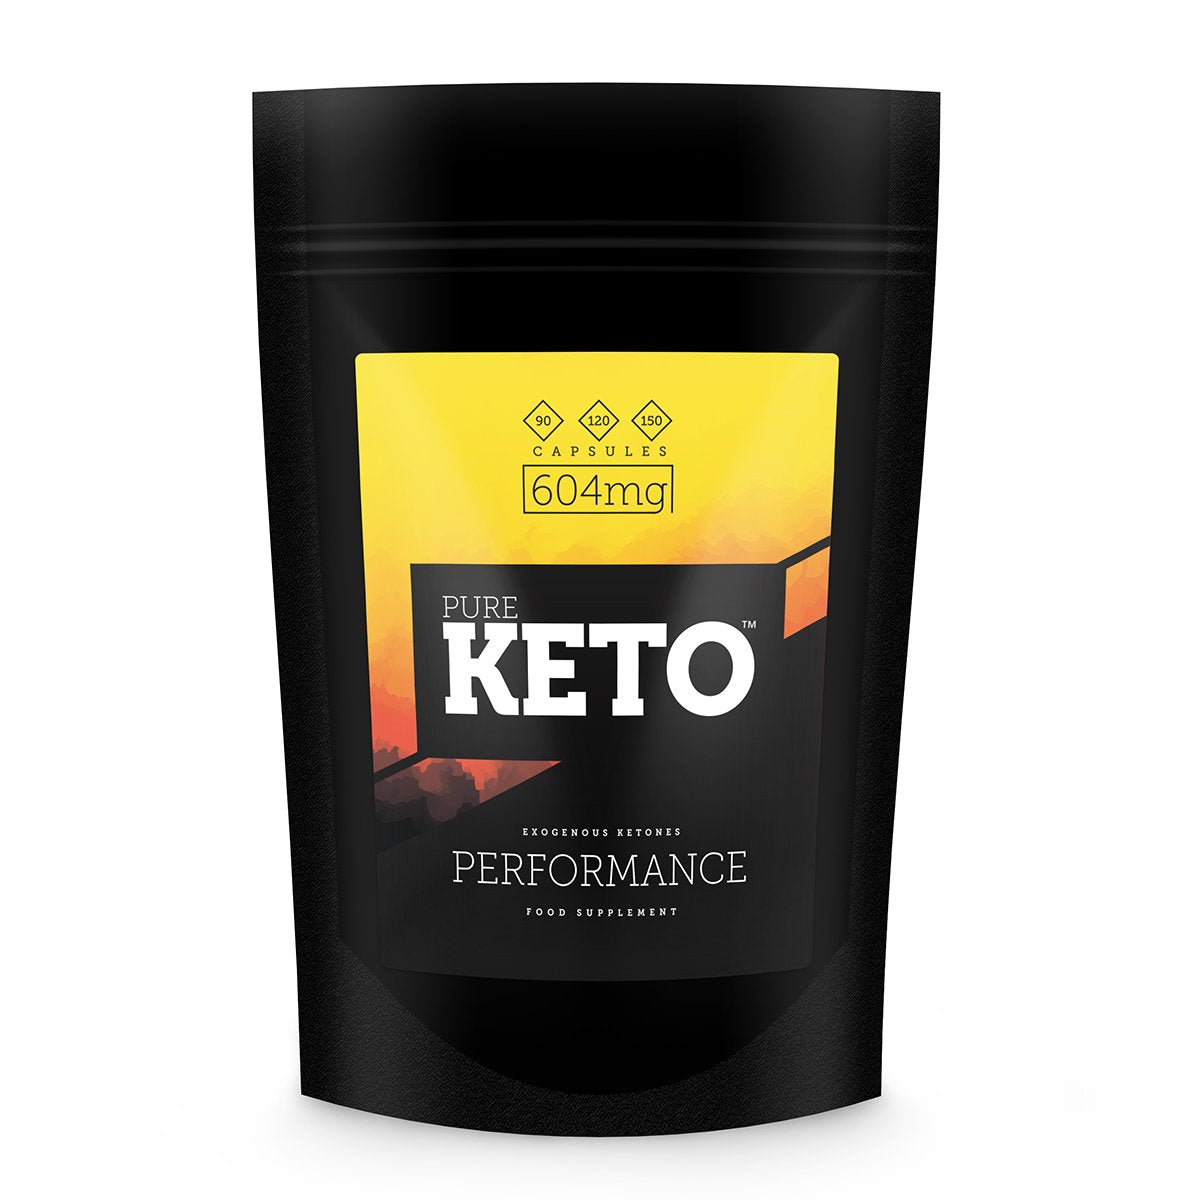 Pure Keto Performance pouch